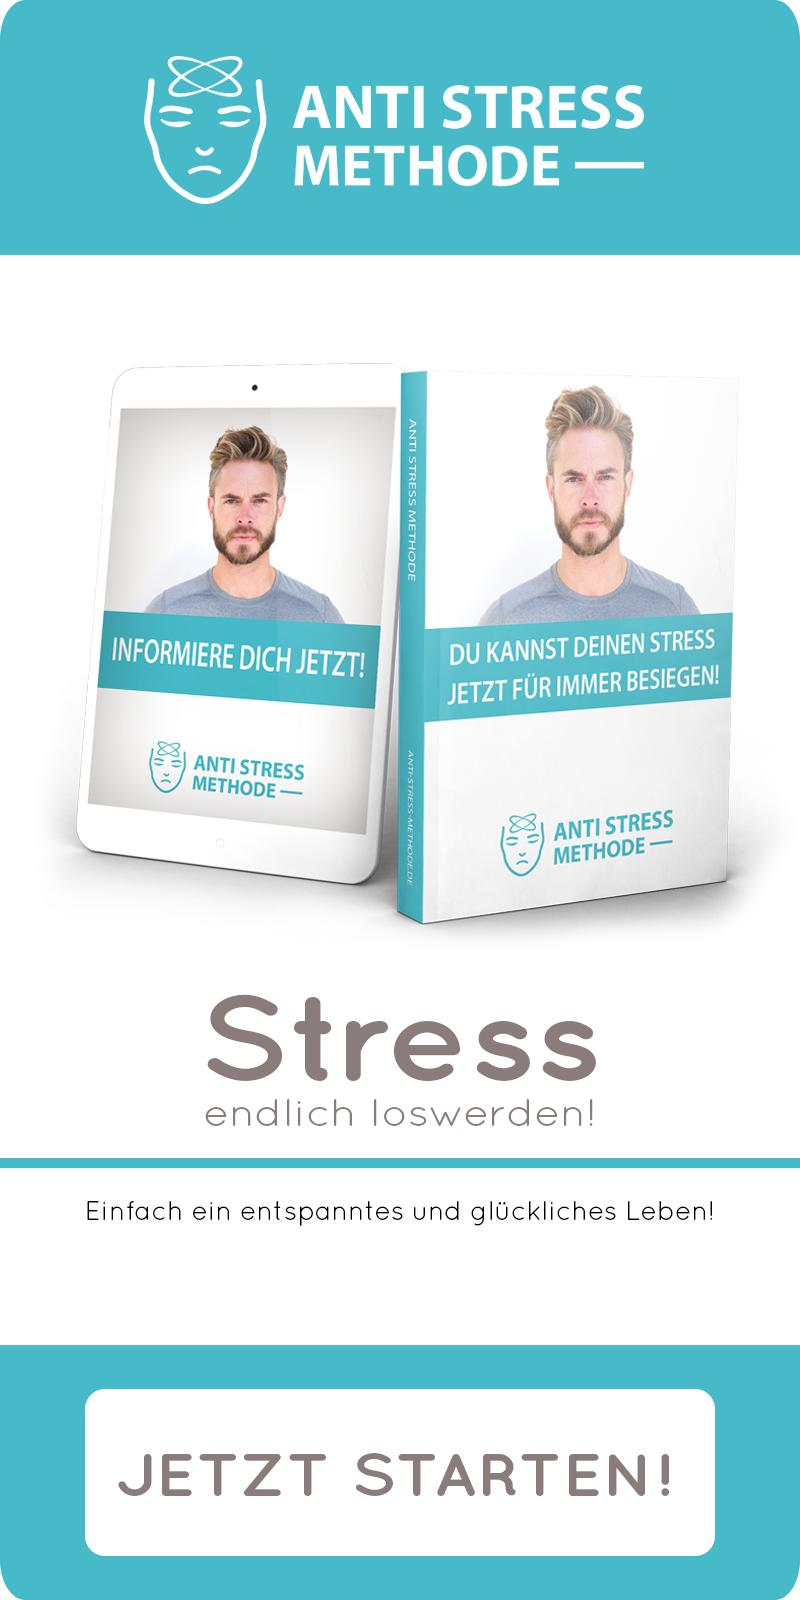 anti-stress-methode